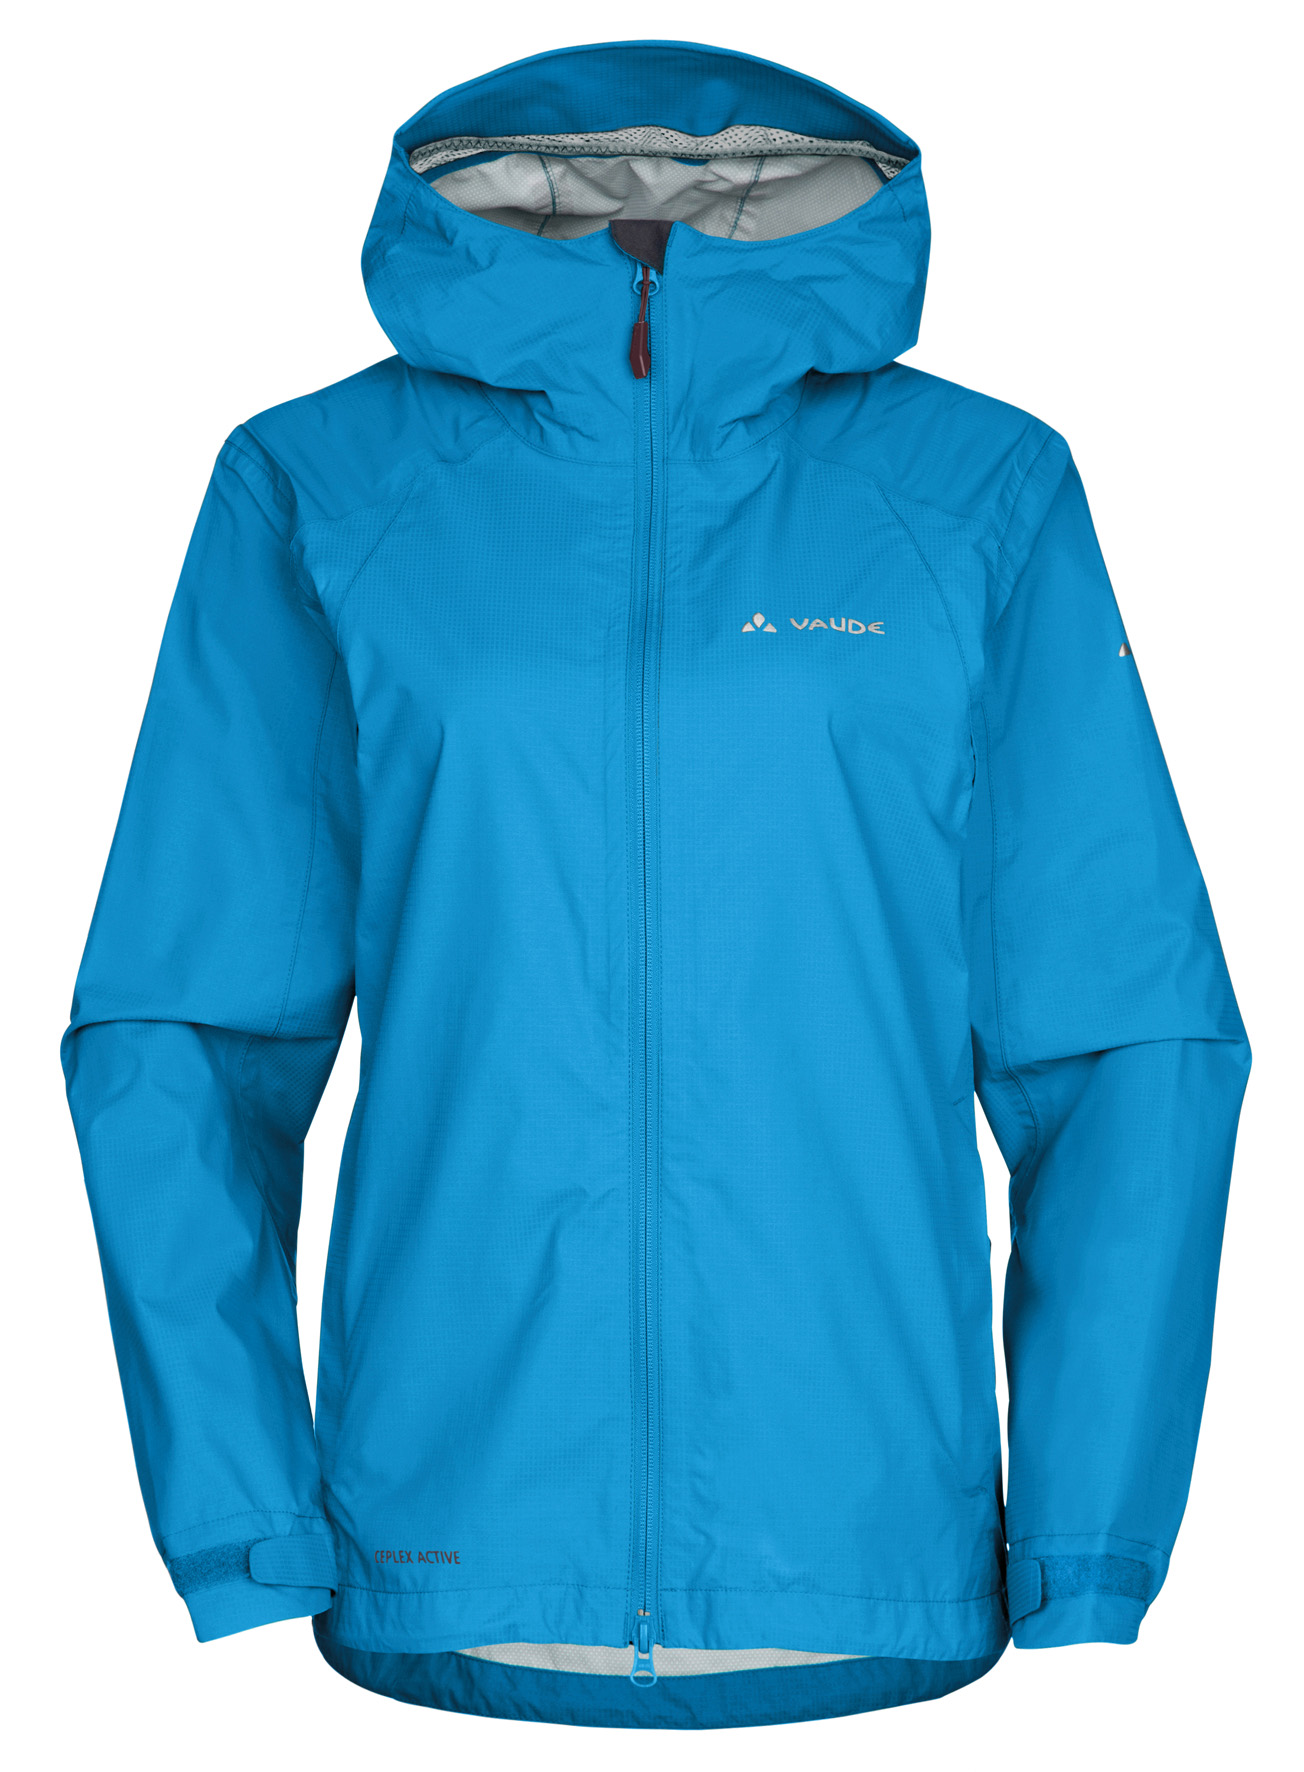 VAUDE Women´s Yaras Jacket teal blue Größe 36 - schneider-sports